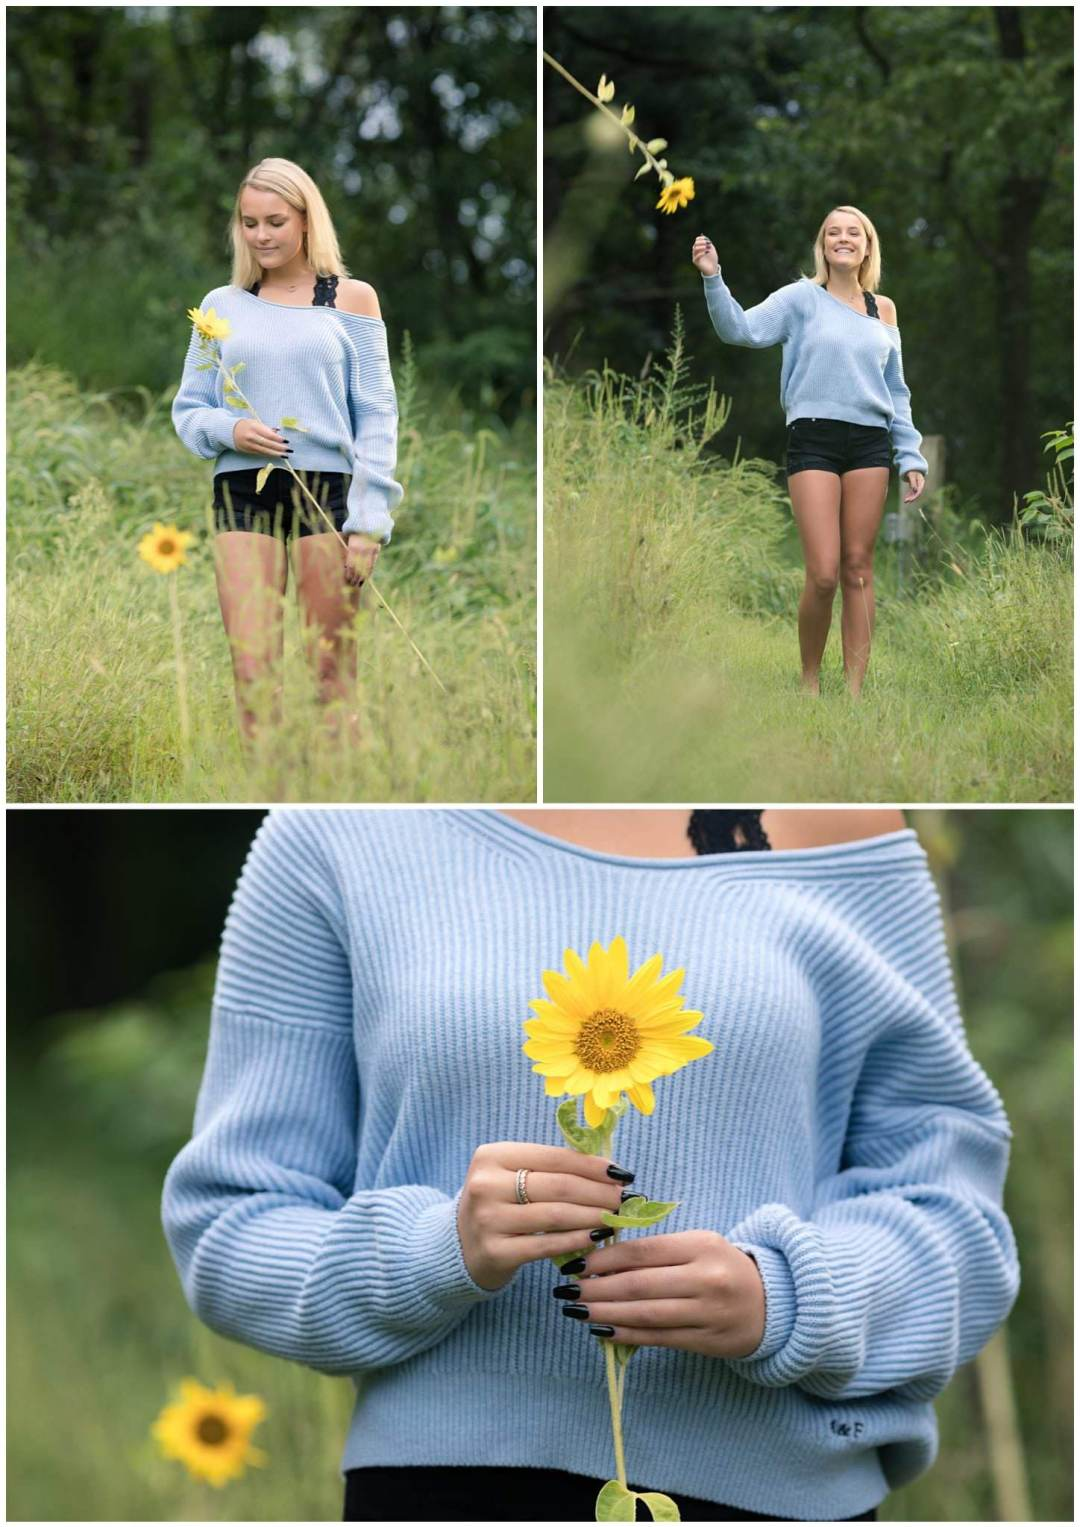 Outdoor senior portrait in field with sunflowers